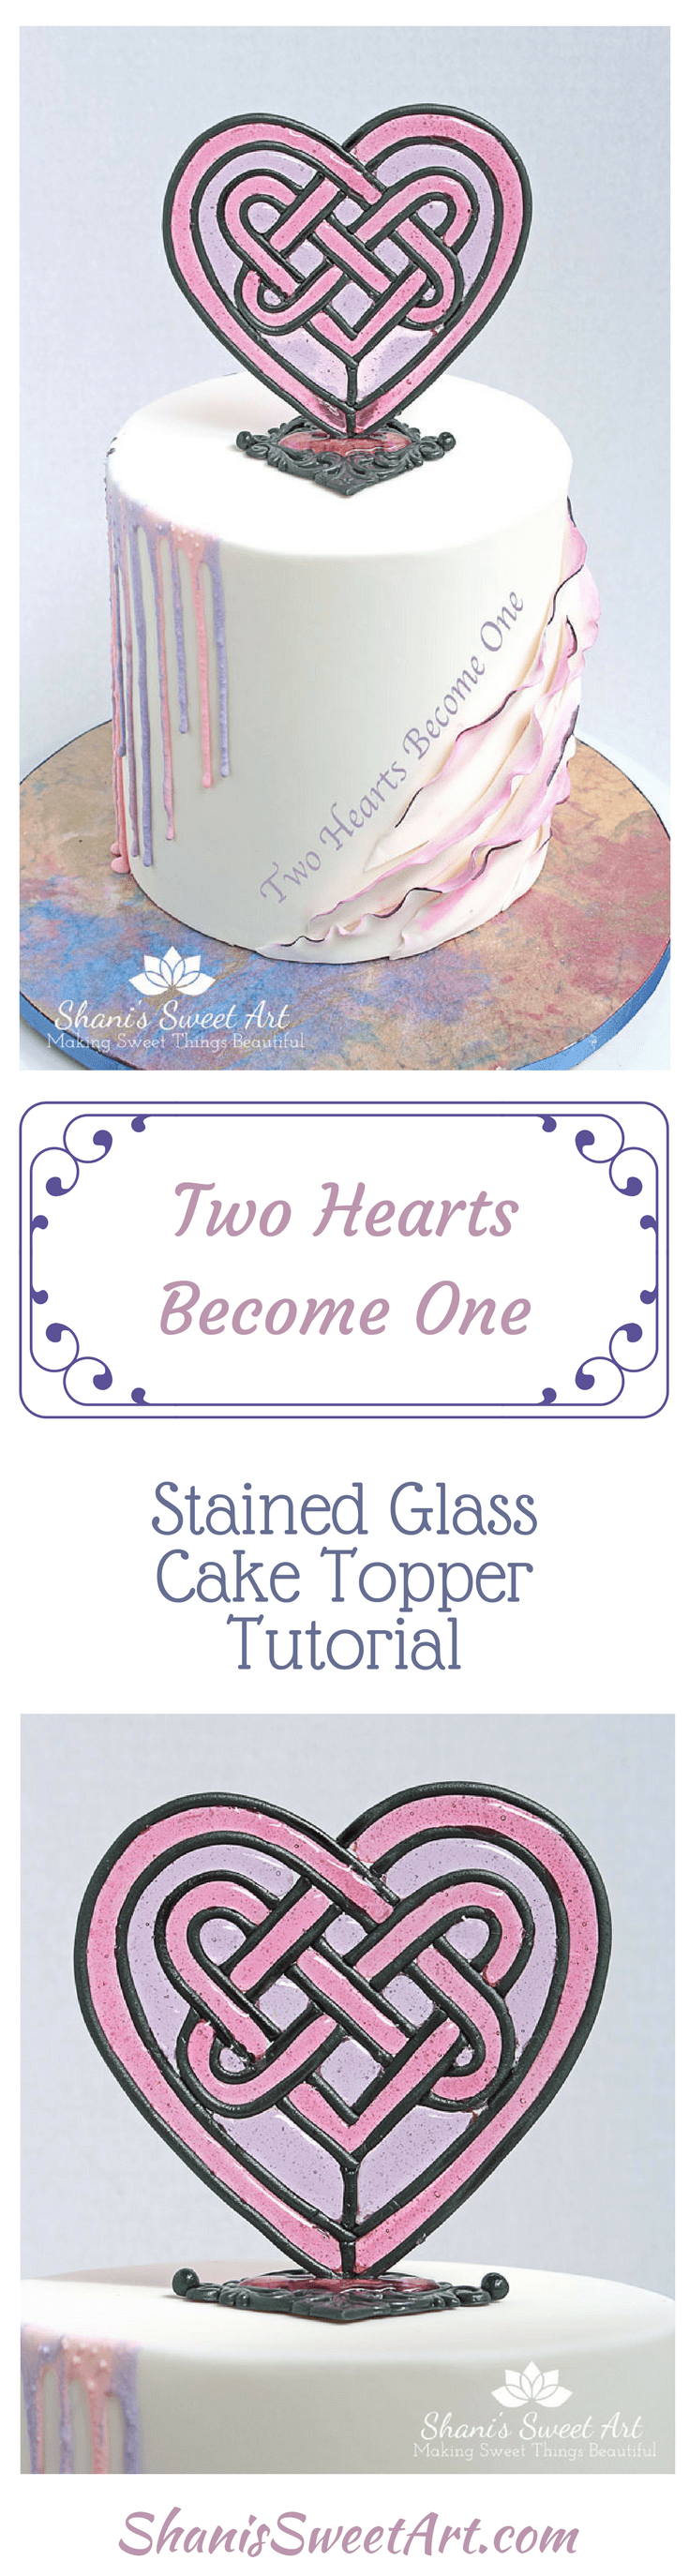 Learn how to create this exquisite Celtic heart stained glass cake topper in this step by step video tutorial.